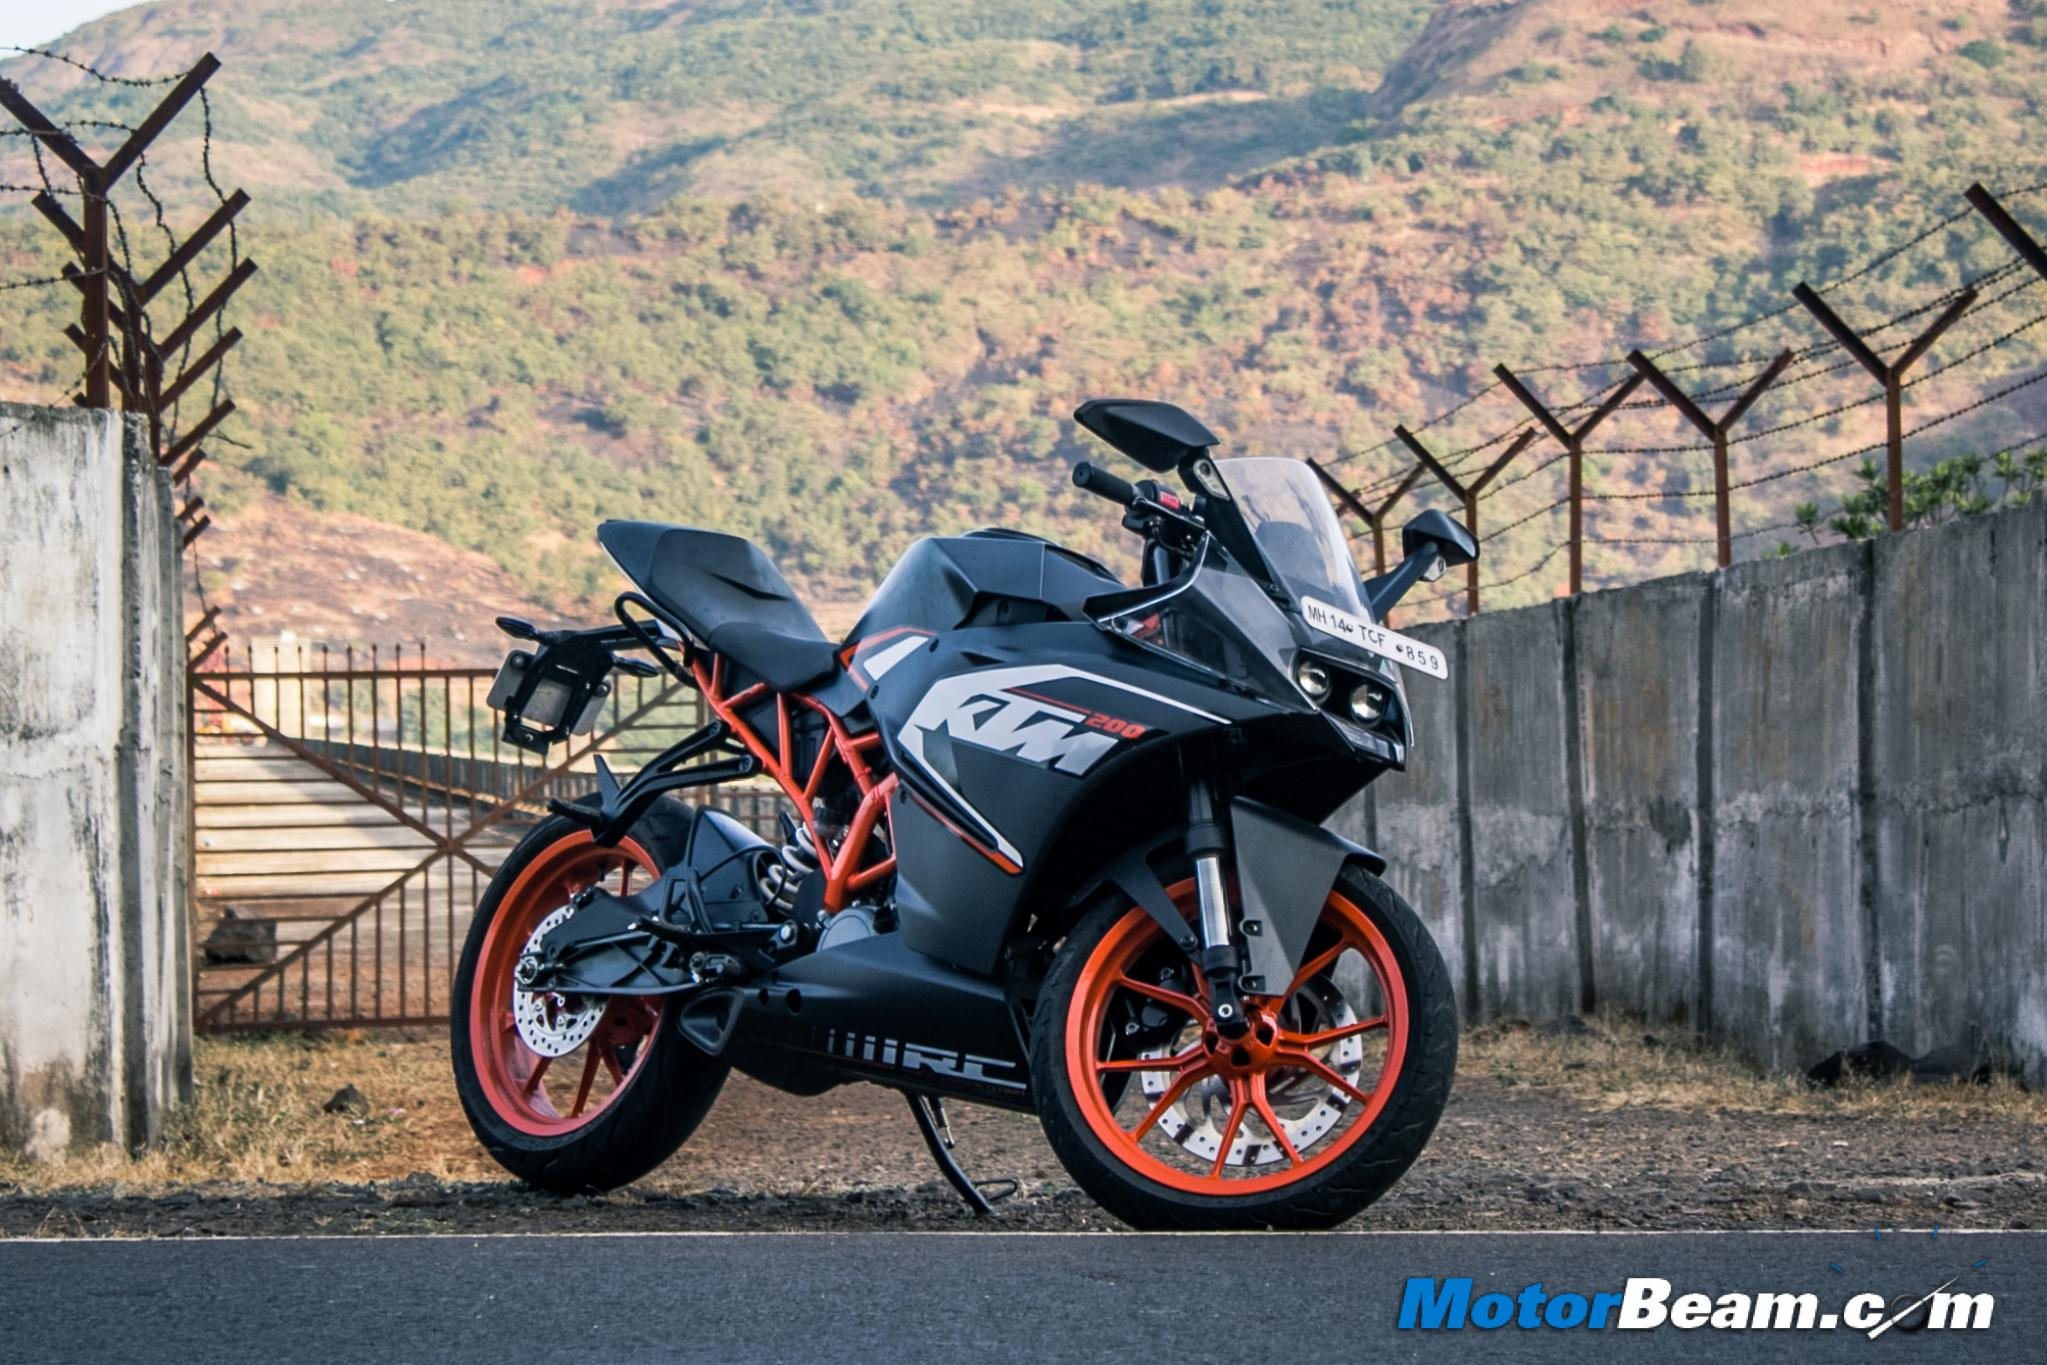 Ktm Rc 200 Hd Wallpapers Download 2015 Ktm Rc 200 2047x1365 Wallpaper Teahub Io